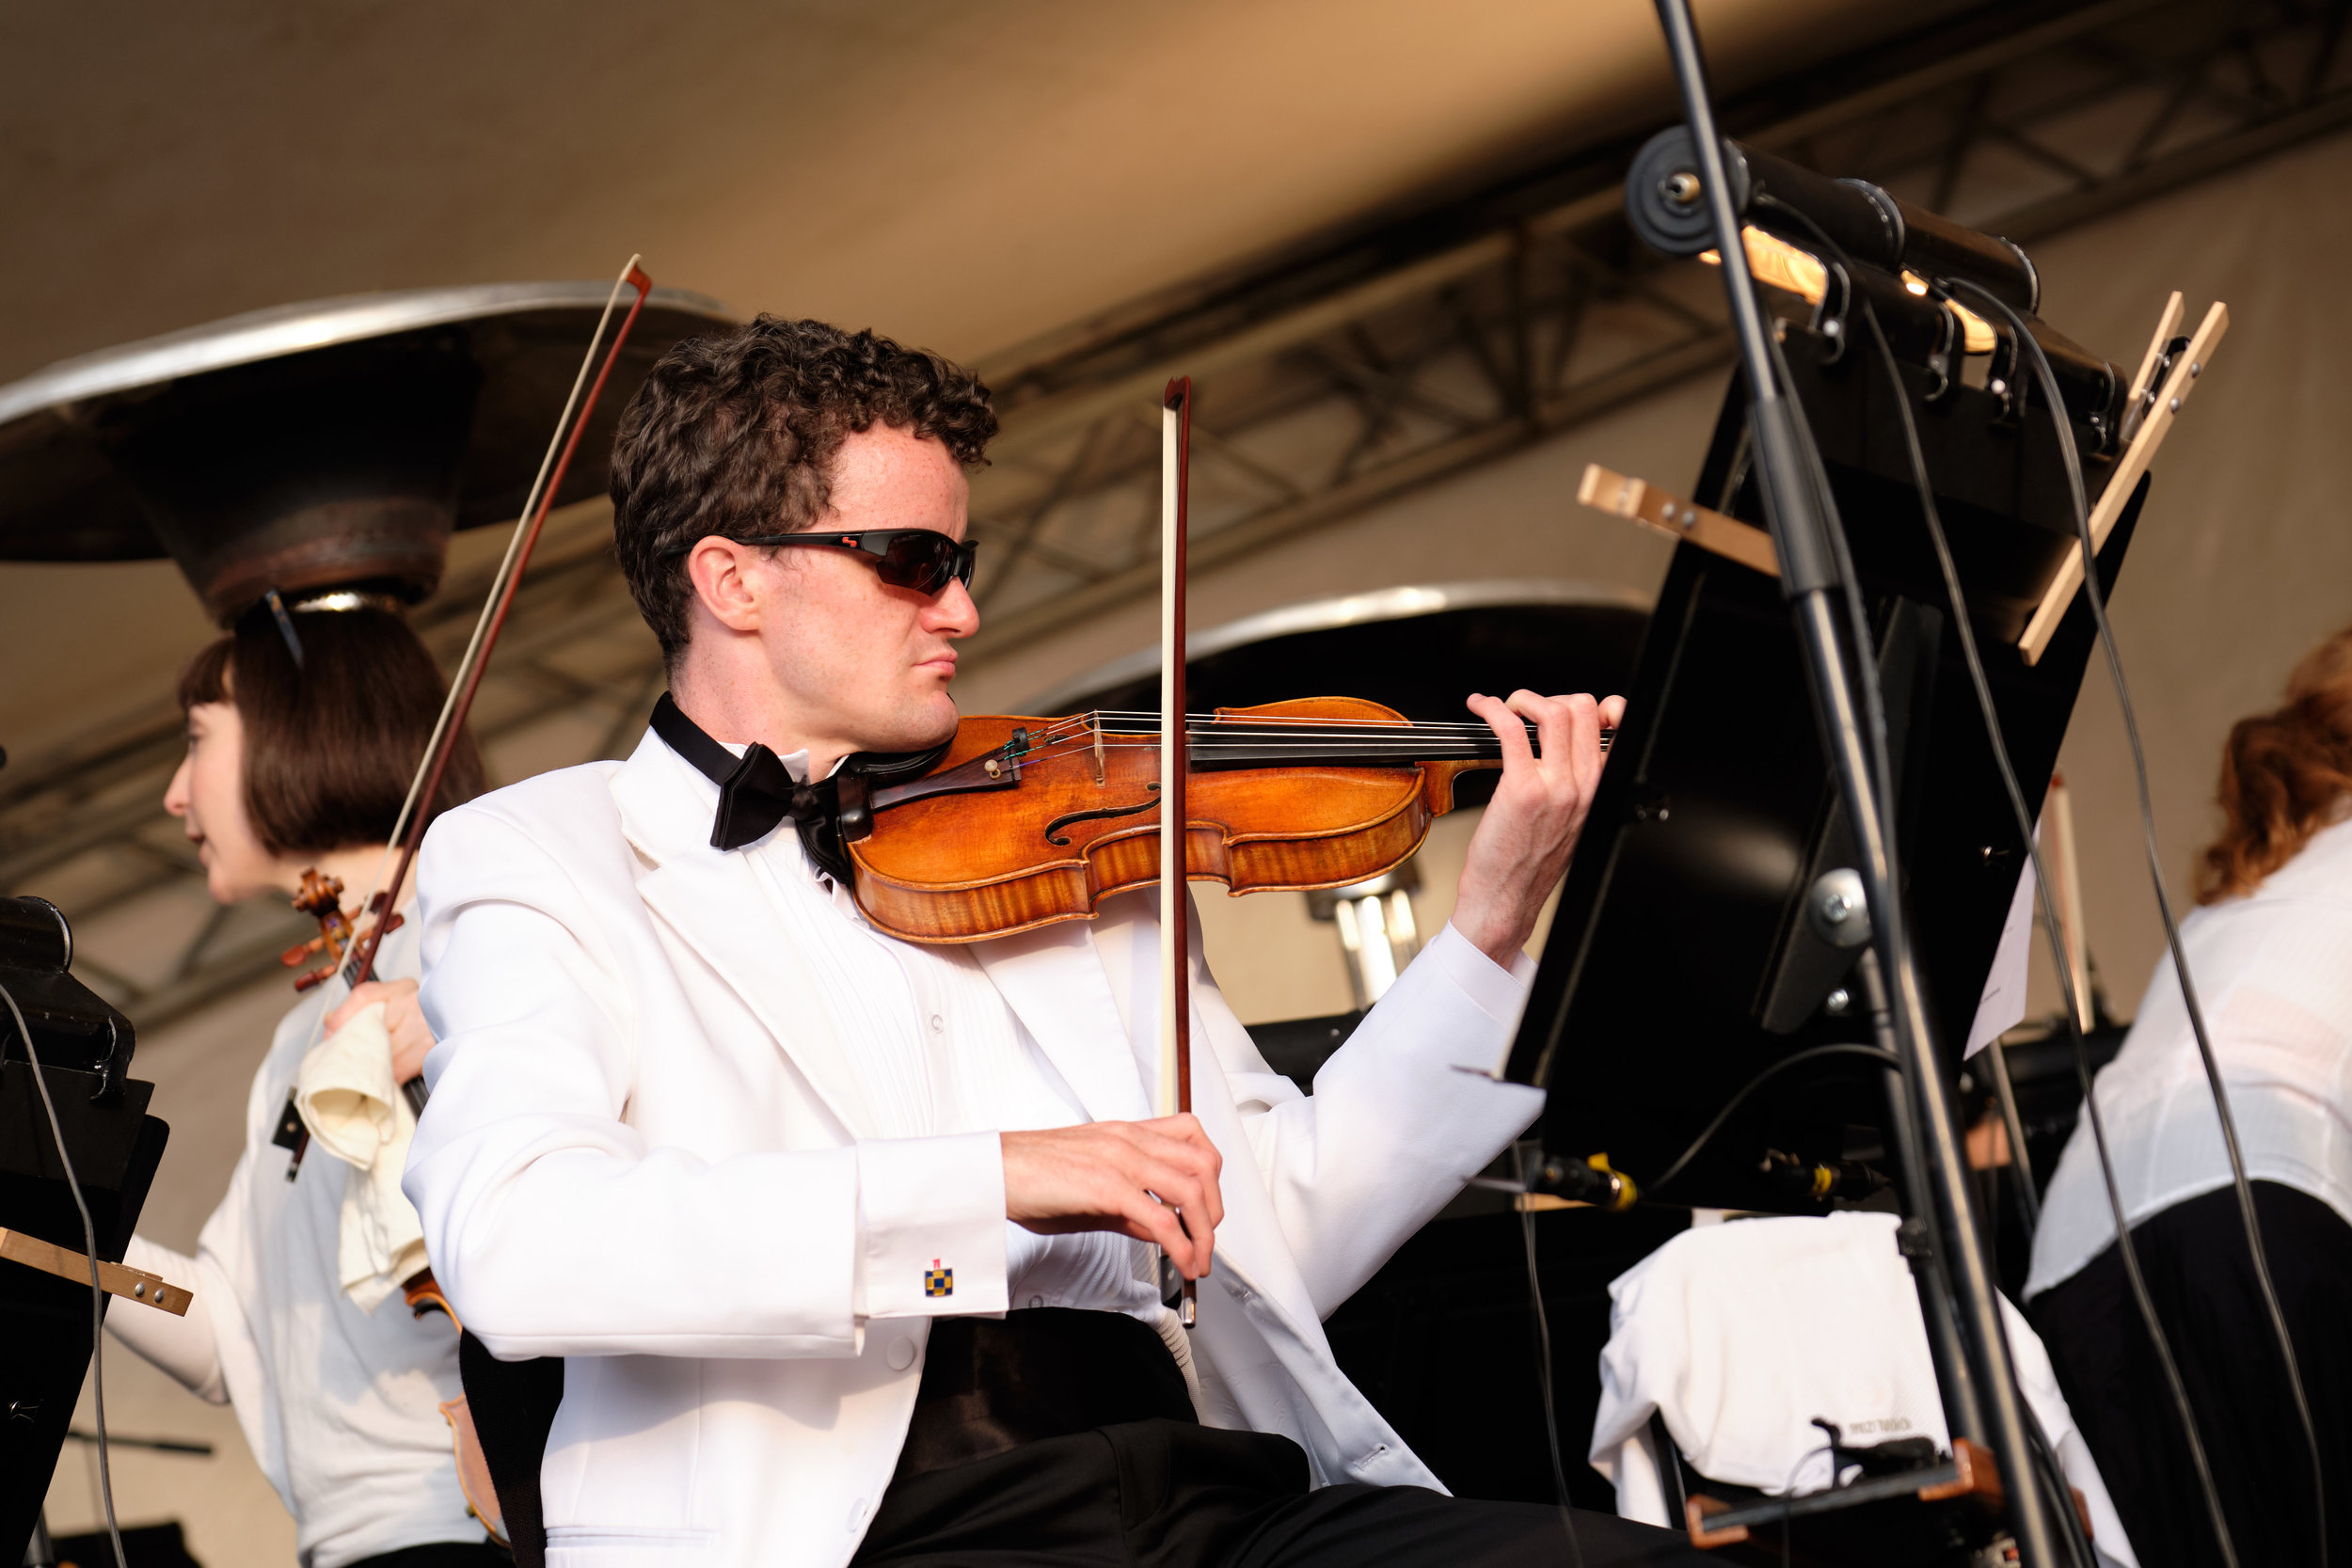 A violinist warms up at the Symphony at Sunset event in Vancouver BC, Canada